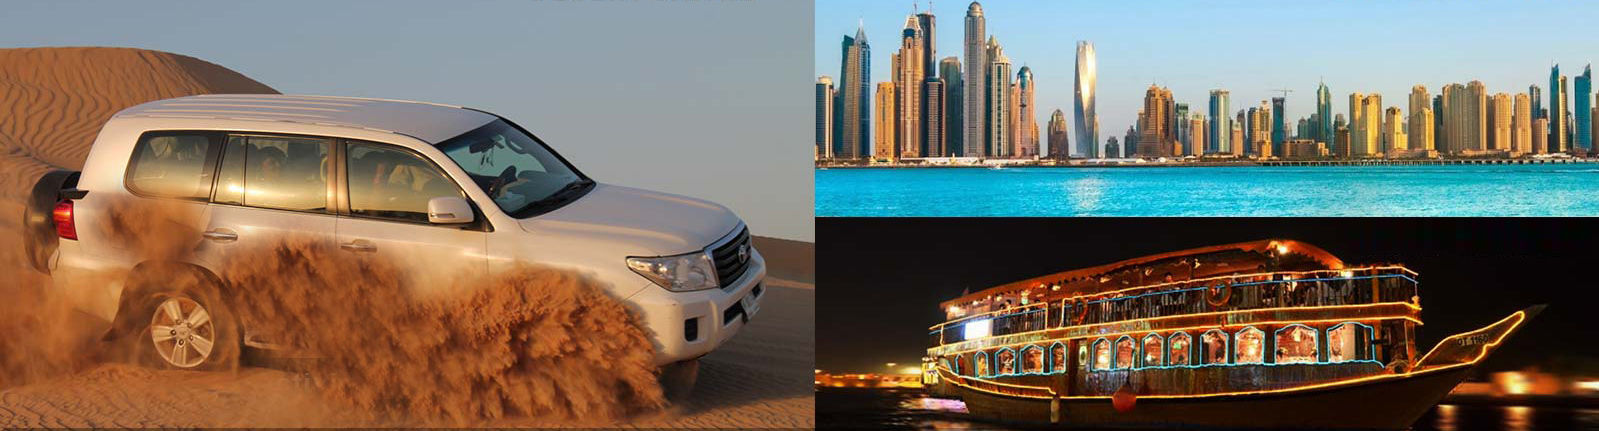 Holiday Tour Packages Dubai UAE - Best Dubai Attractions Deals, #desertsafaridubai , #burjkhalifaticket , #imgworld, #dubaicitytour, #dhowcruise, | www.dxbsafari.com